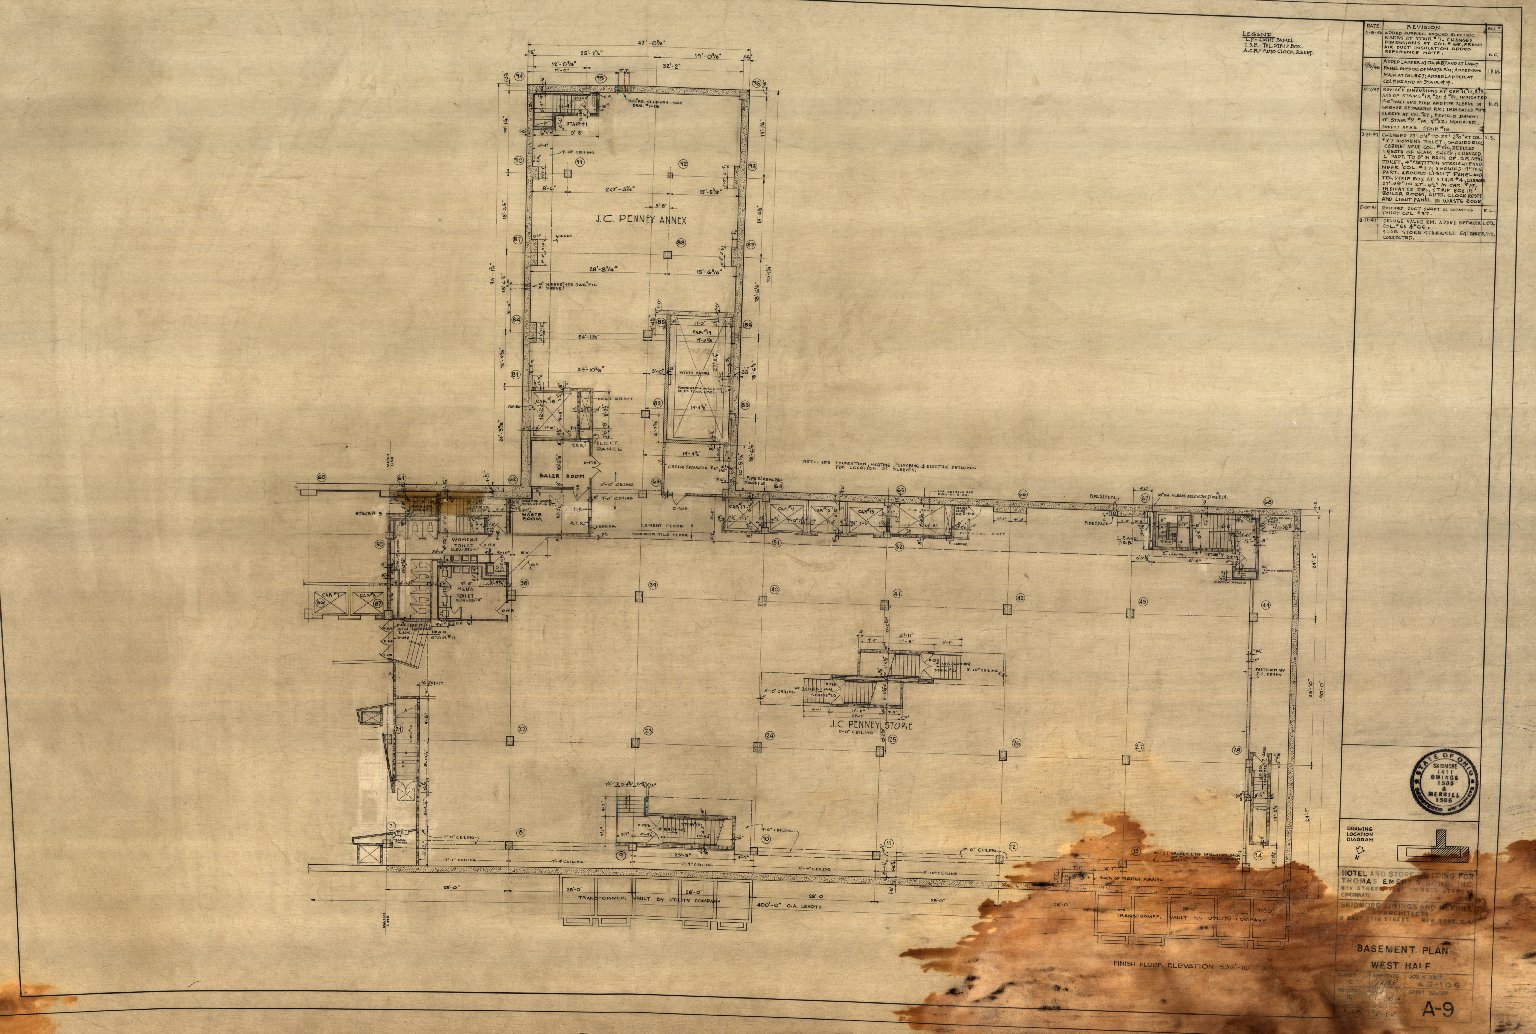 Basement Plan West Half (A 9)